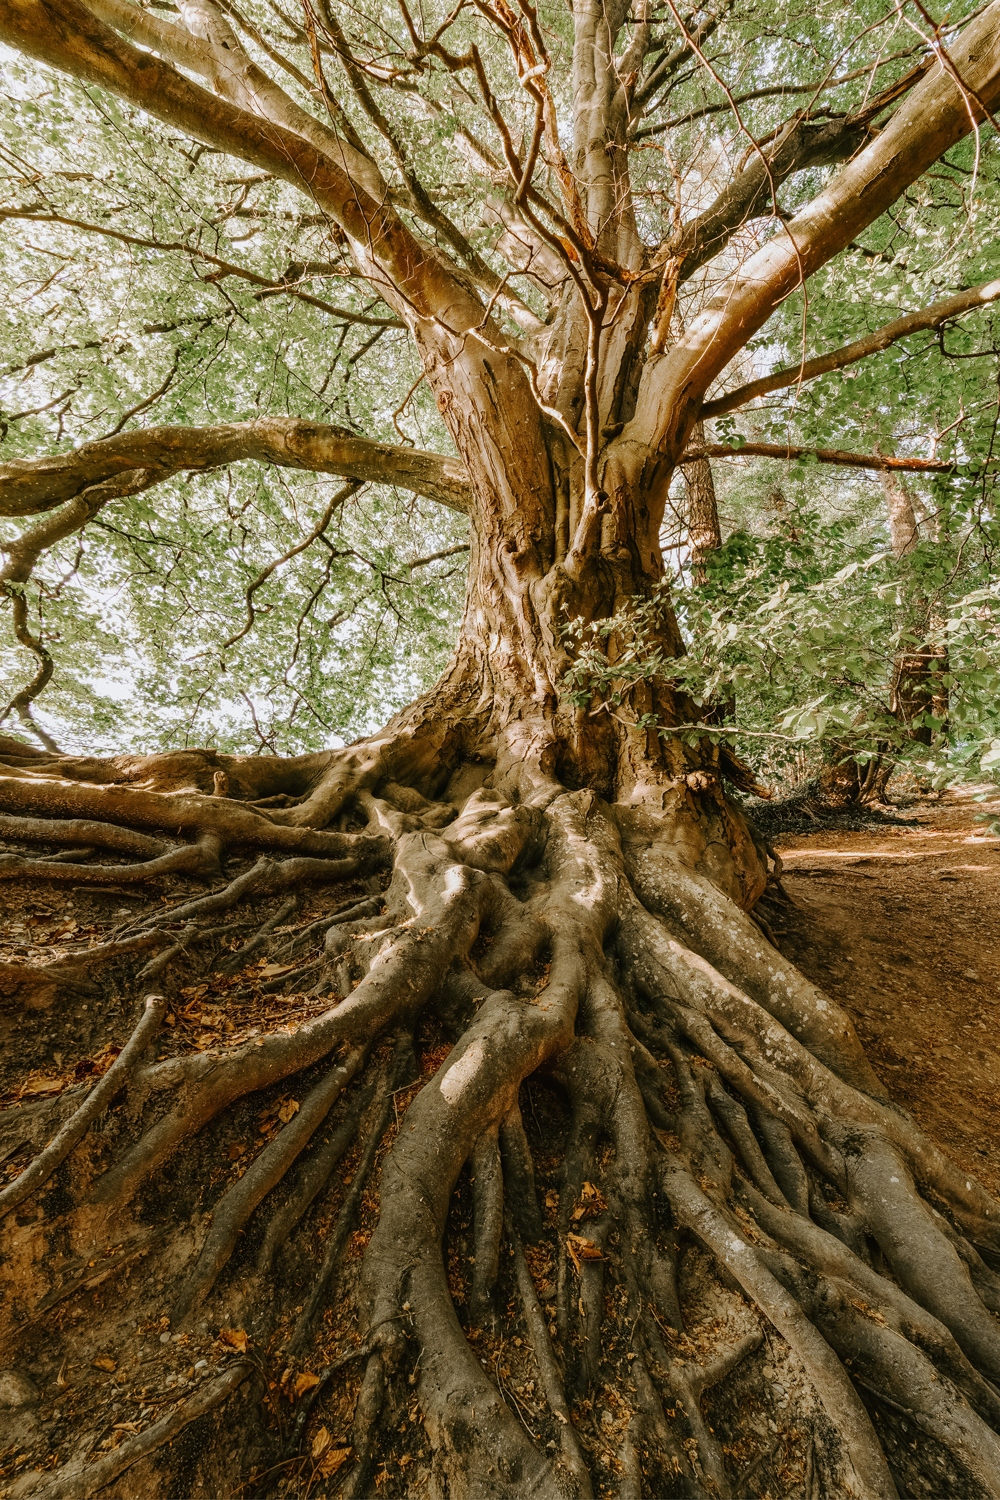 Tree with large root in forest go to the roots